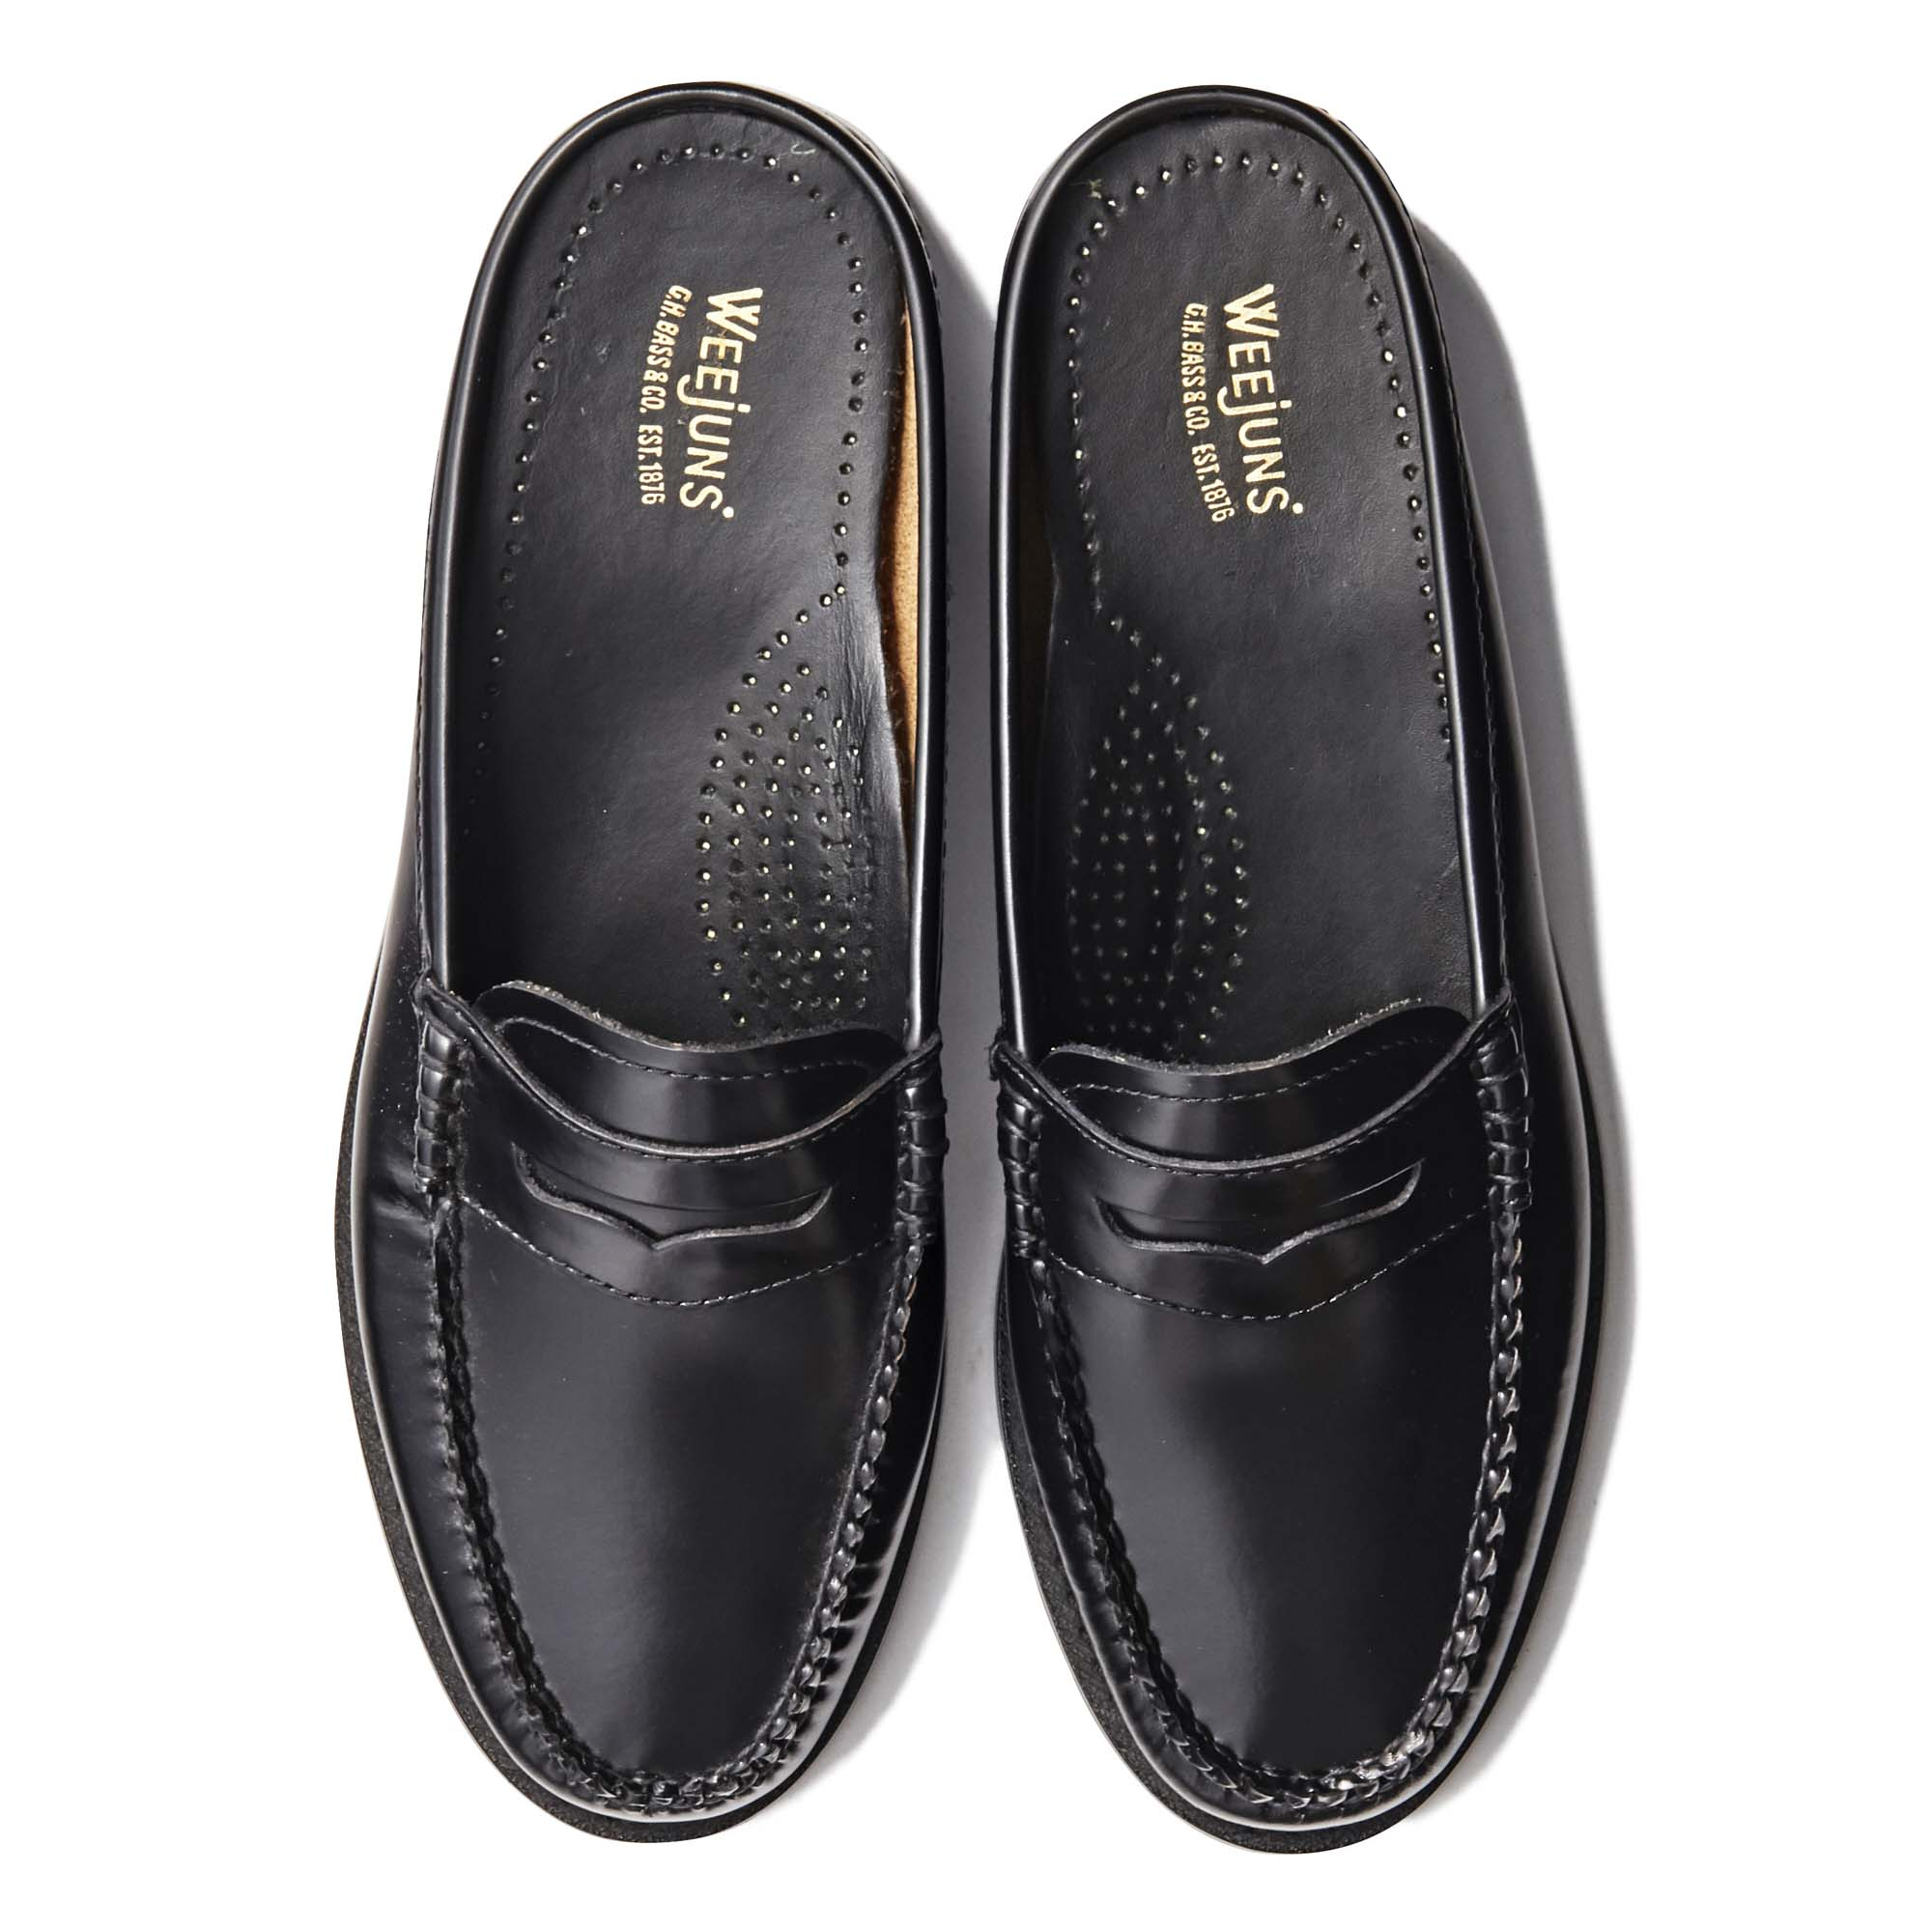 41000 / BLACK (LEATHER SOLE)